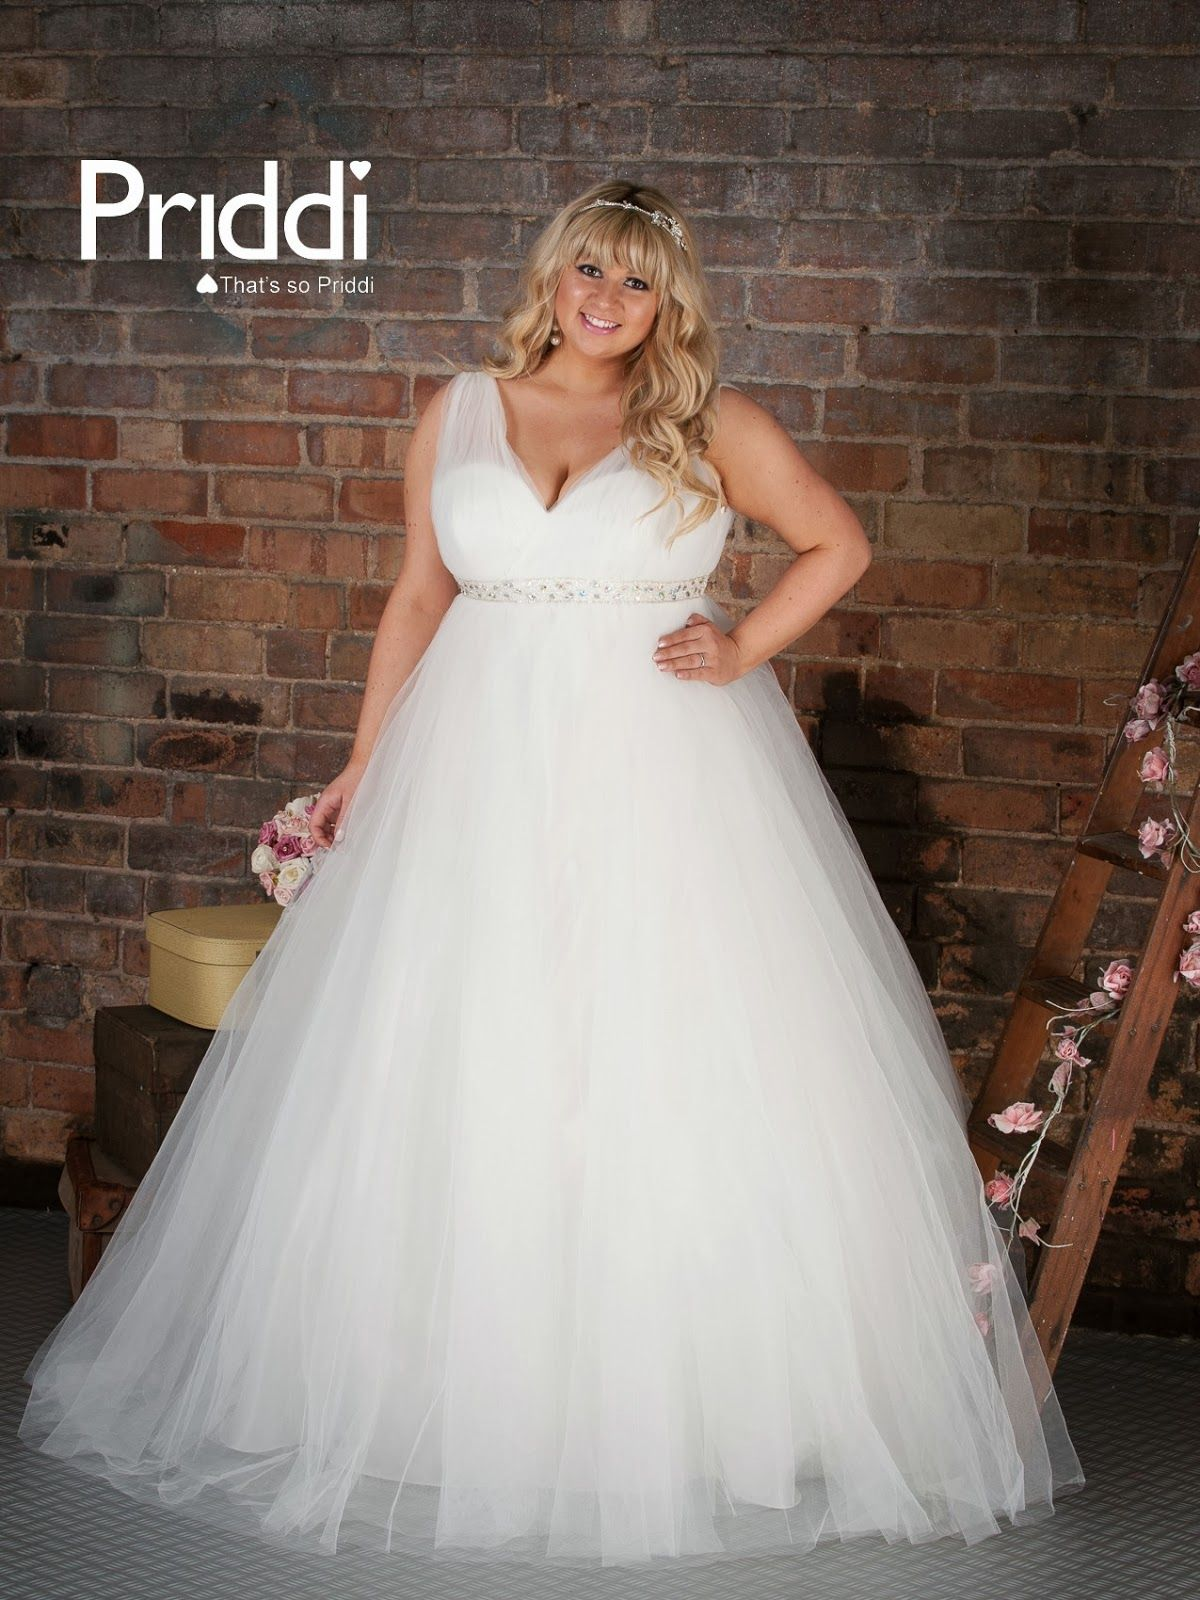 Plus size wedding dresses ball gown google search for Best wedding dress styles for plus size brides